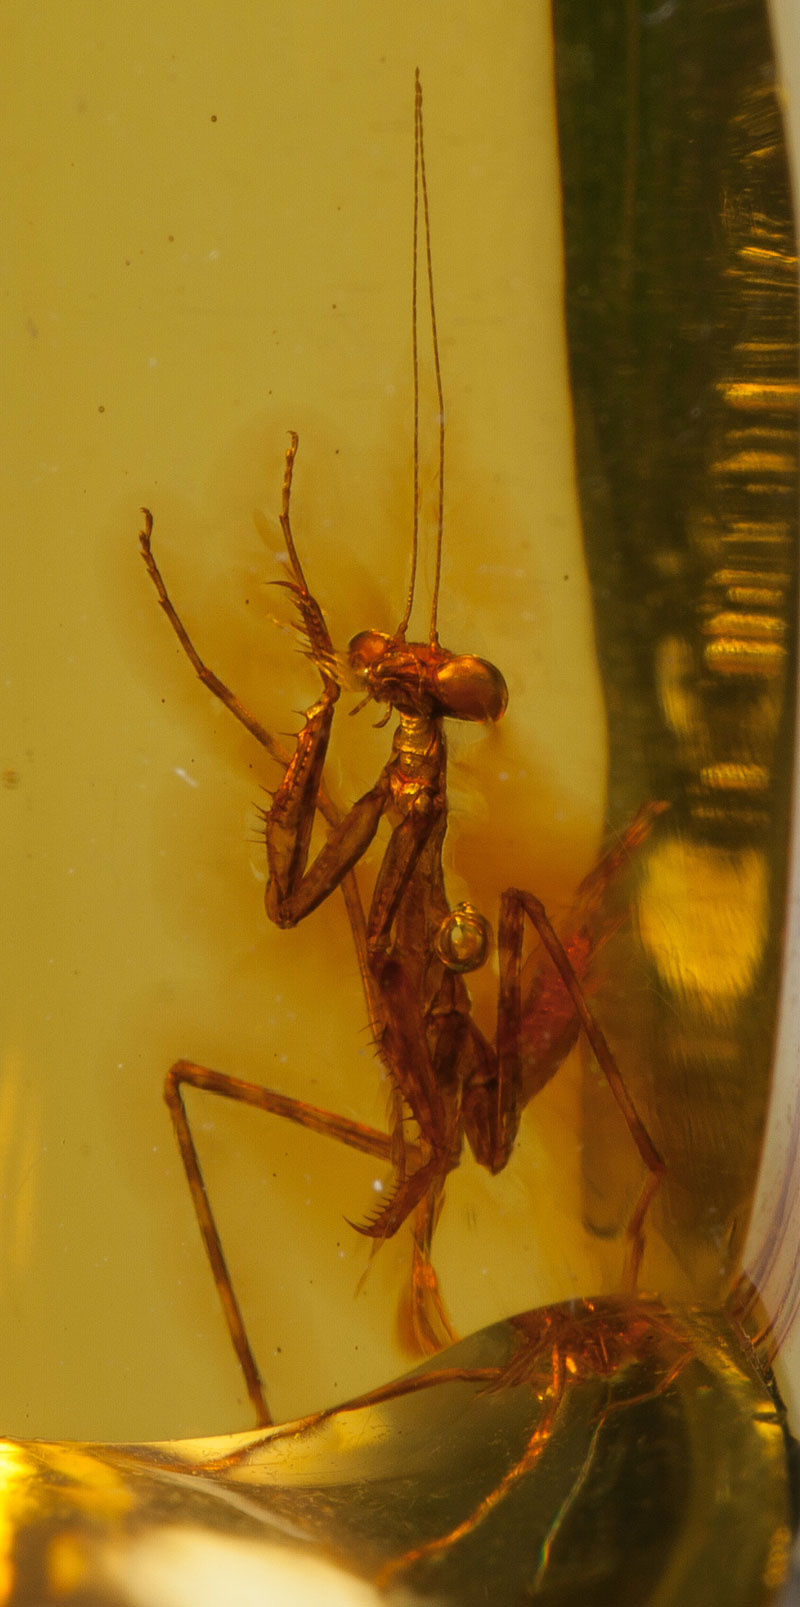 a 12 million year old praying mantis encased in amber 4 A 12 Million Year Old Praying Mantis Encased in Amber